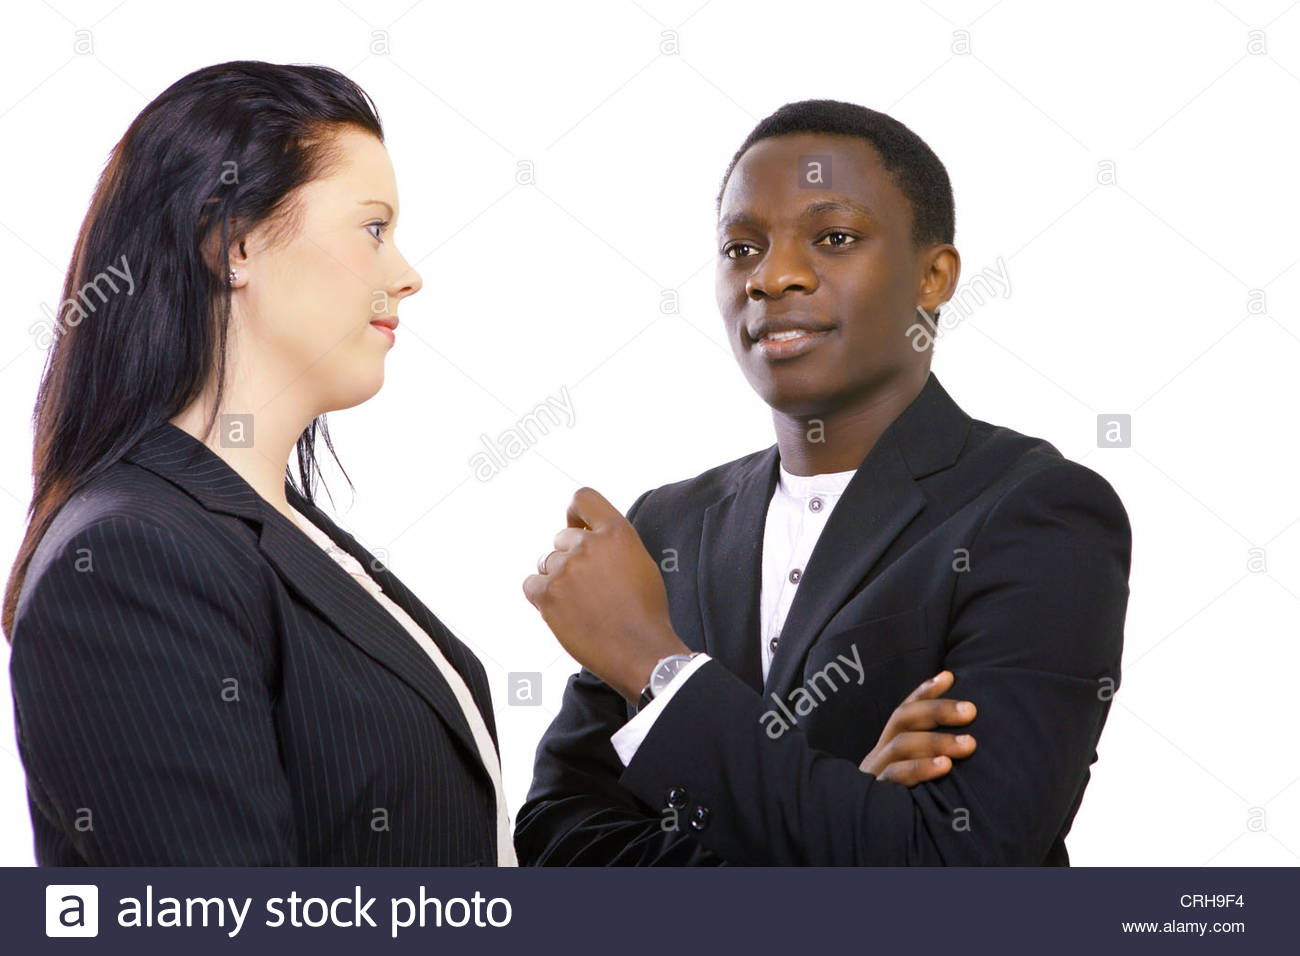 Business talk Photo Stock